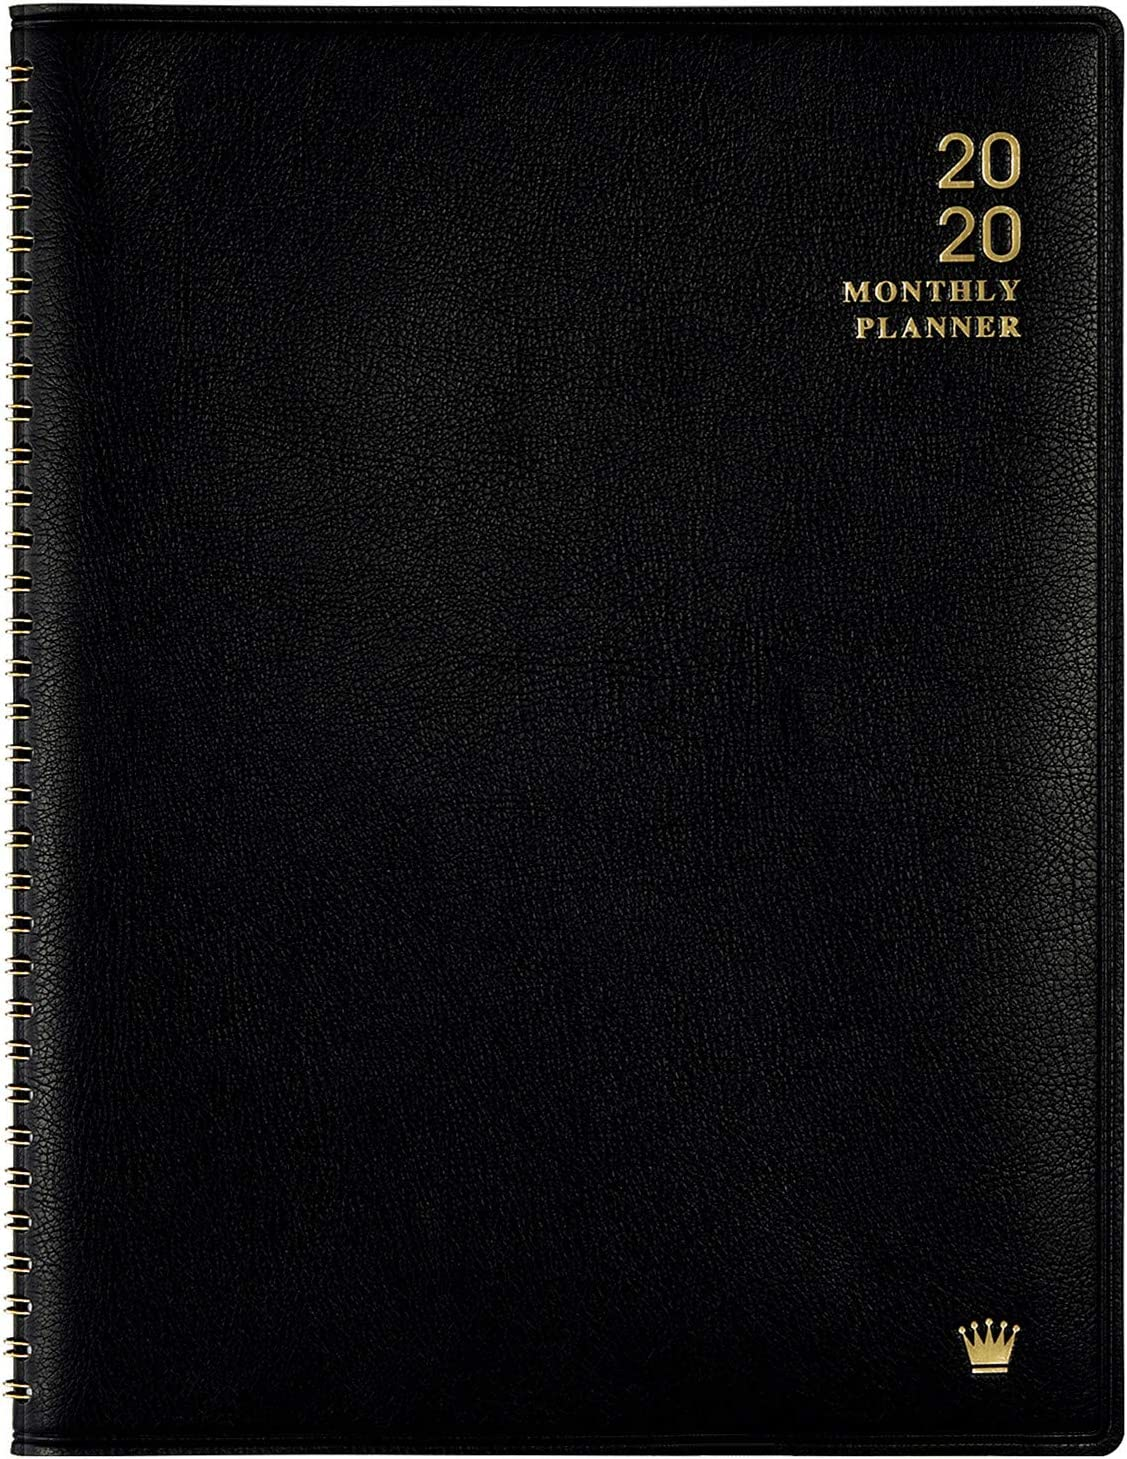 Black FranklinCovey Classic FC Basics Wide Simulated Leather Open Wire-Bound Cover